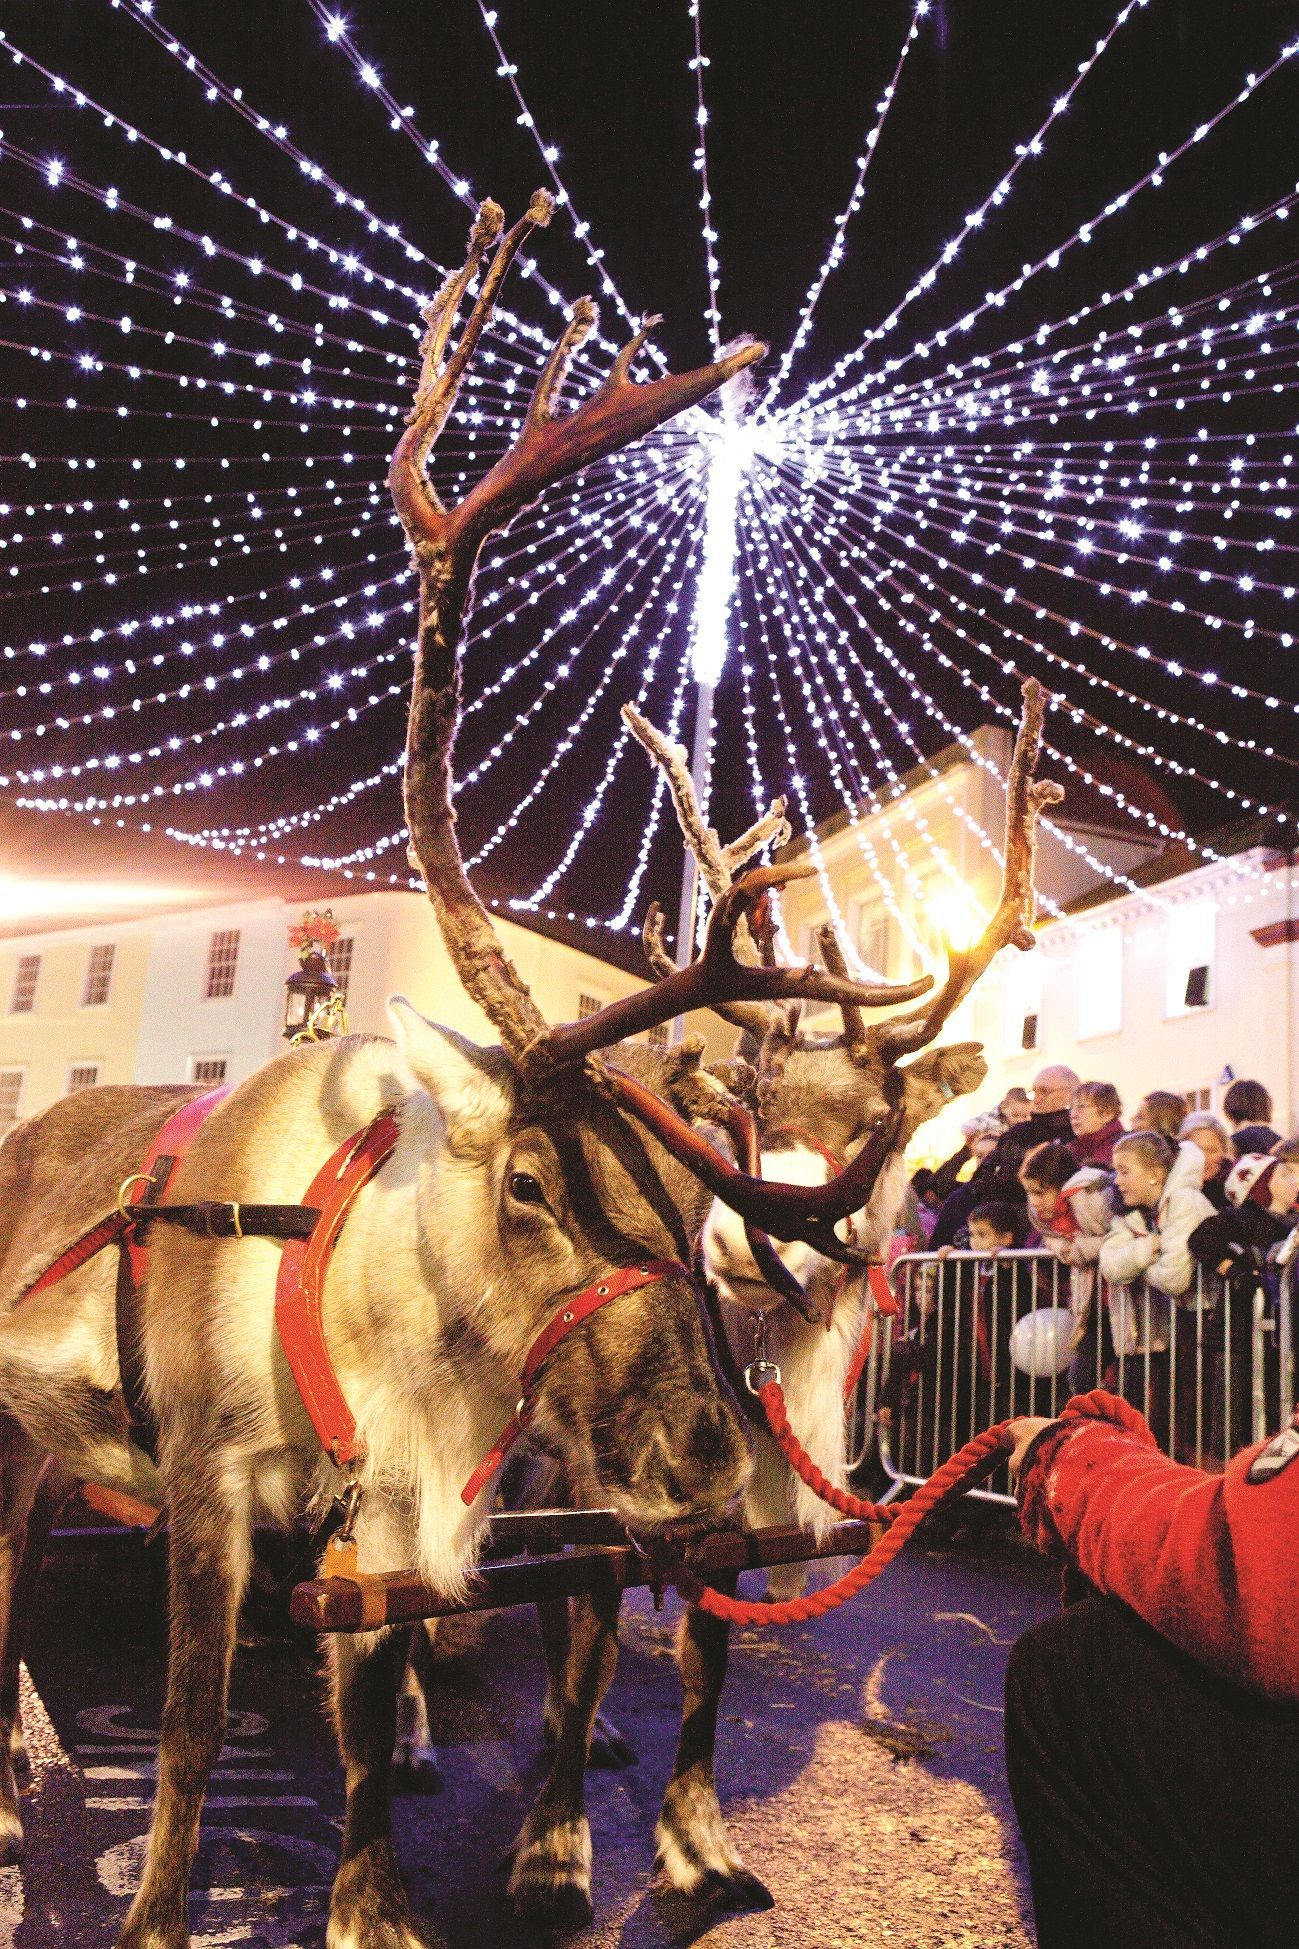 Truro's reindeer parade will take place on November 29